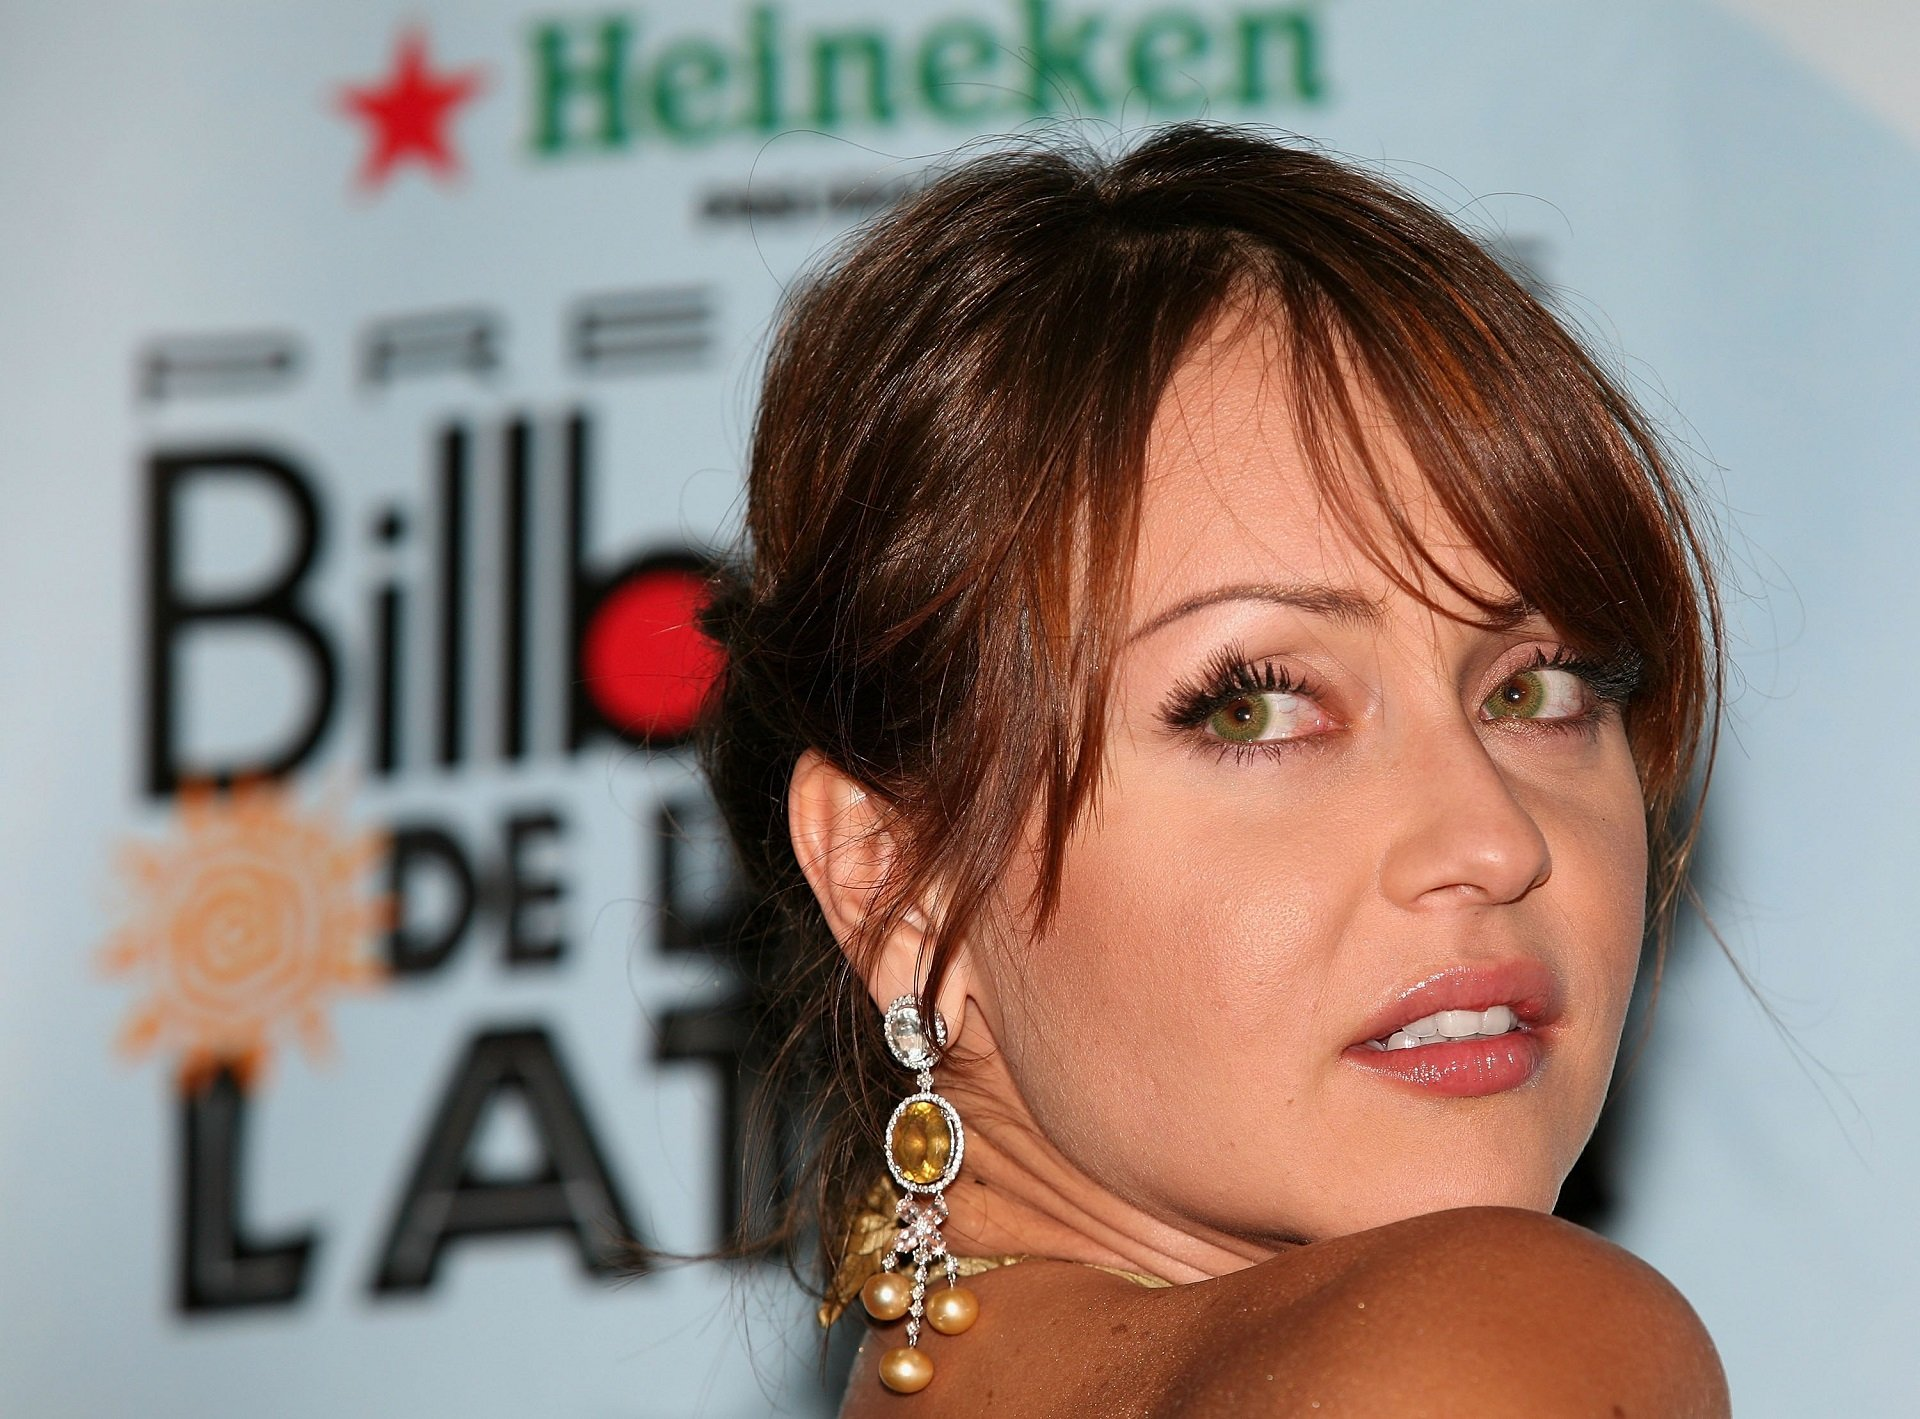 Gaby Spanic en los Premios Billboard 2006 en el Hard Rock Hotel de Hollywood, Florida || Fuente: Getty Images